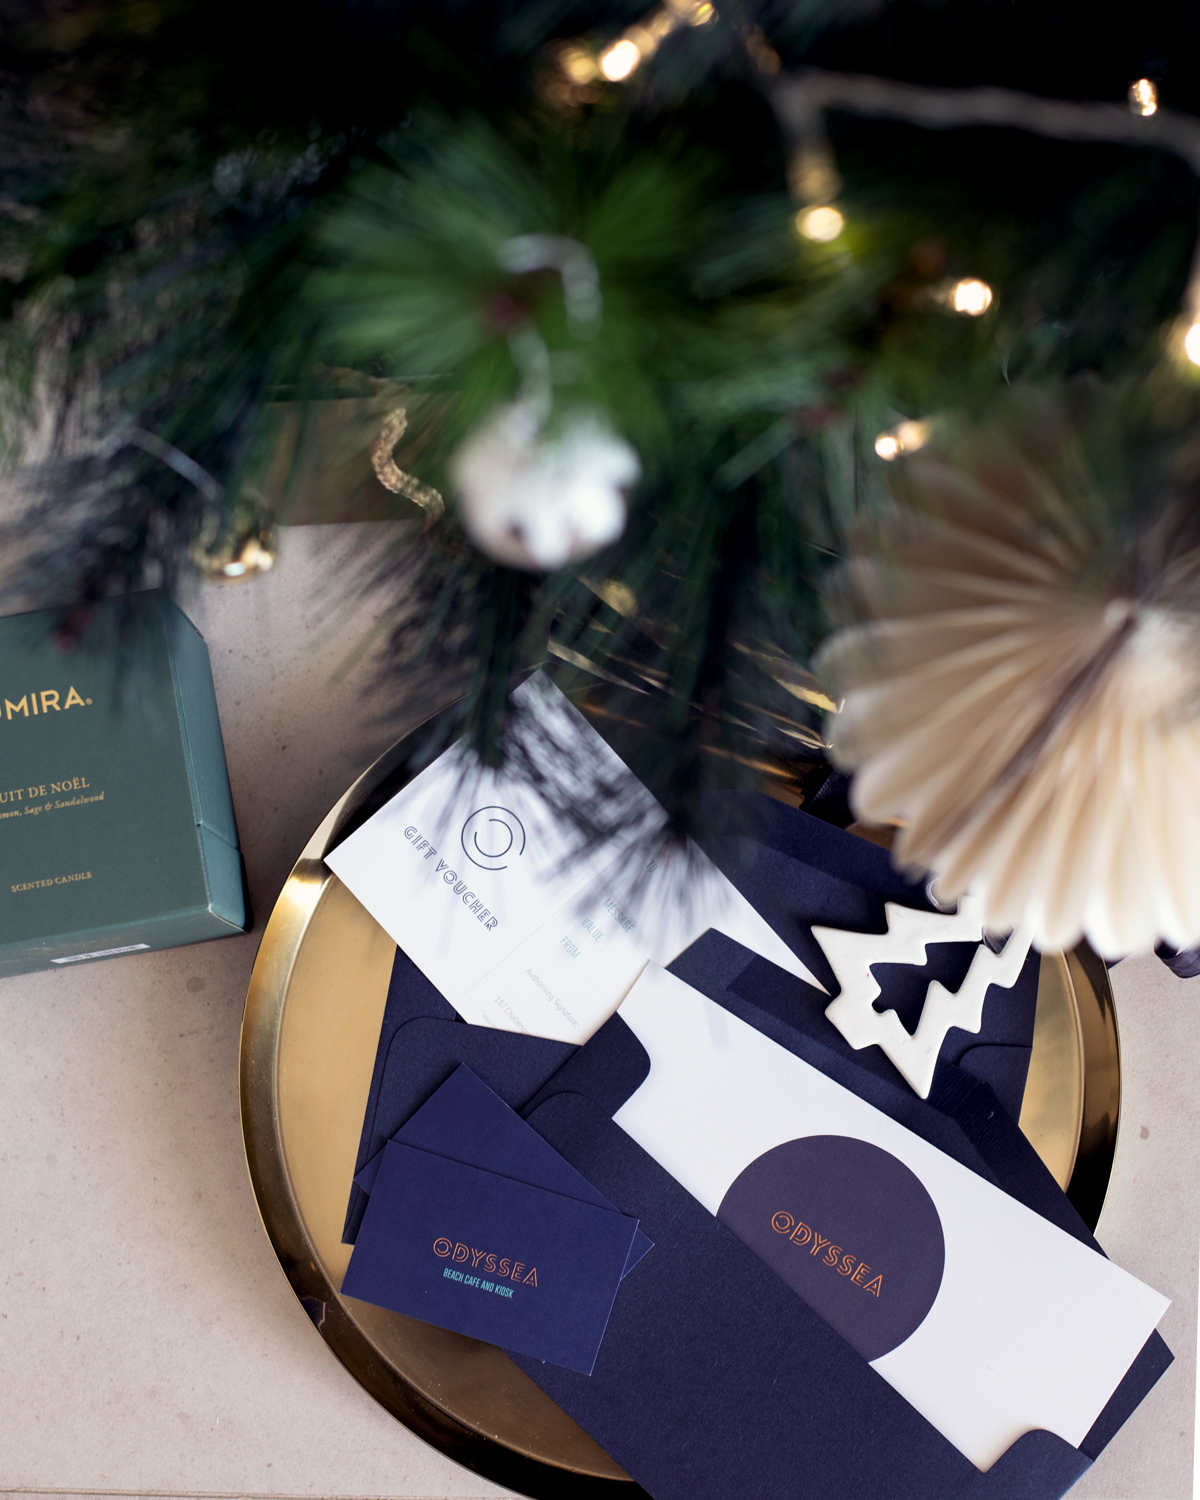 2018 Christmas gift guide Inspiring Wit blog featuring Perth gift ideas Odyssea vouchers